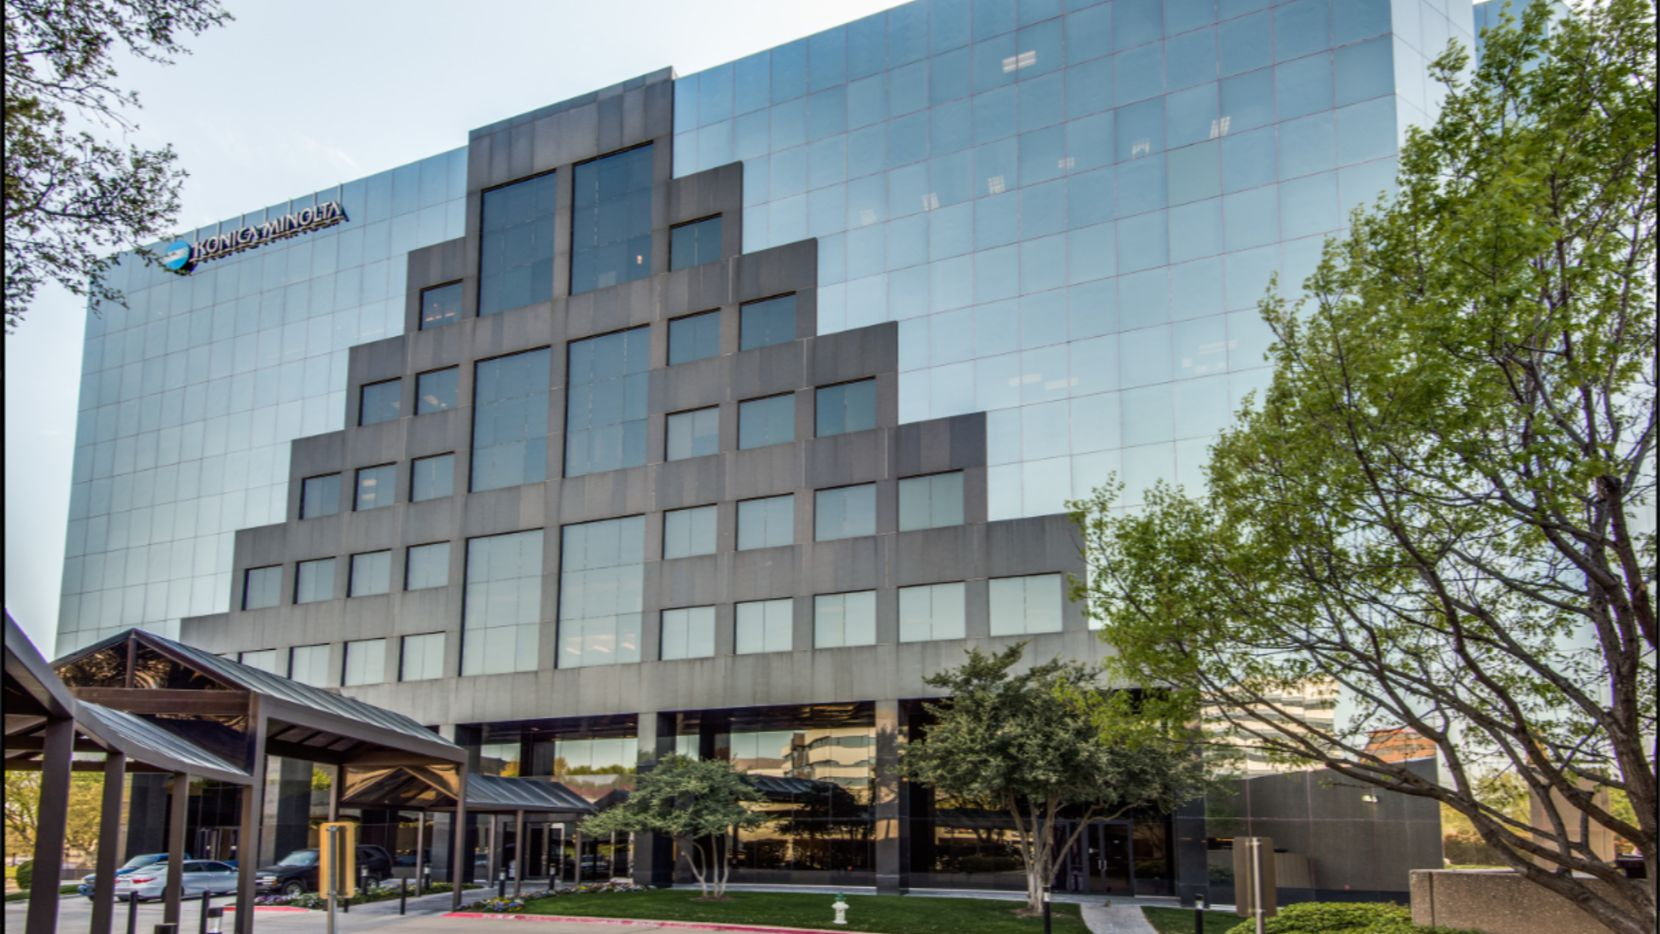 The Landmark office building was developed in 1985 and is near the Dallas North Tollway.